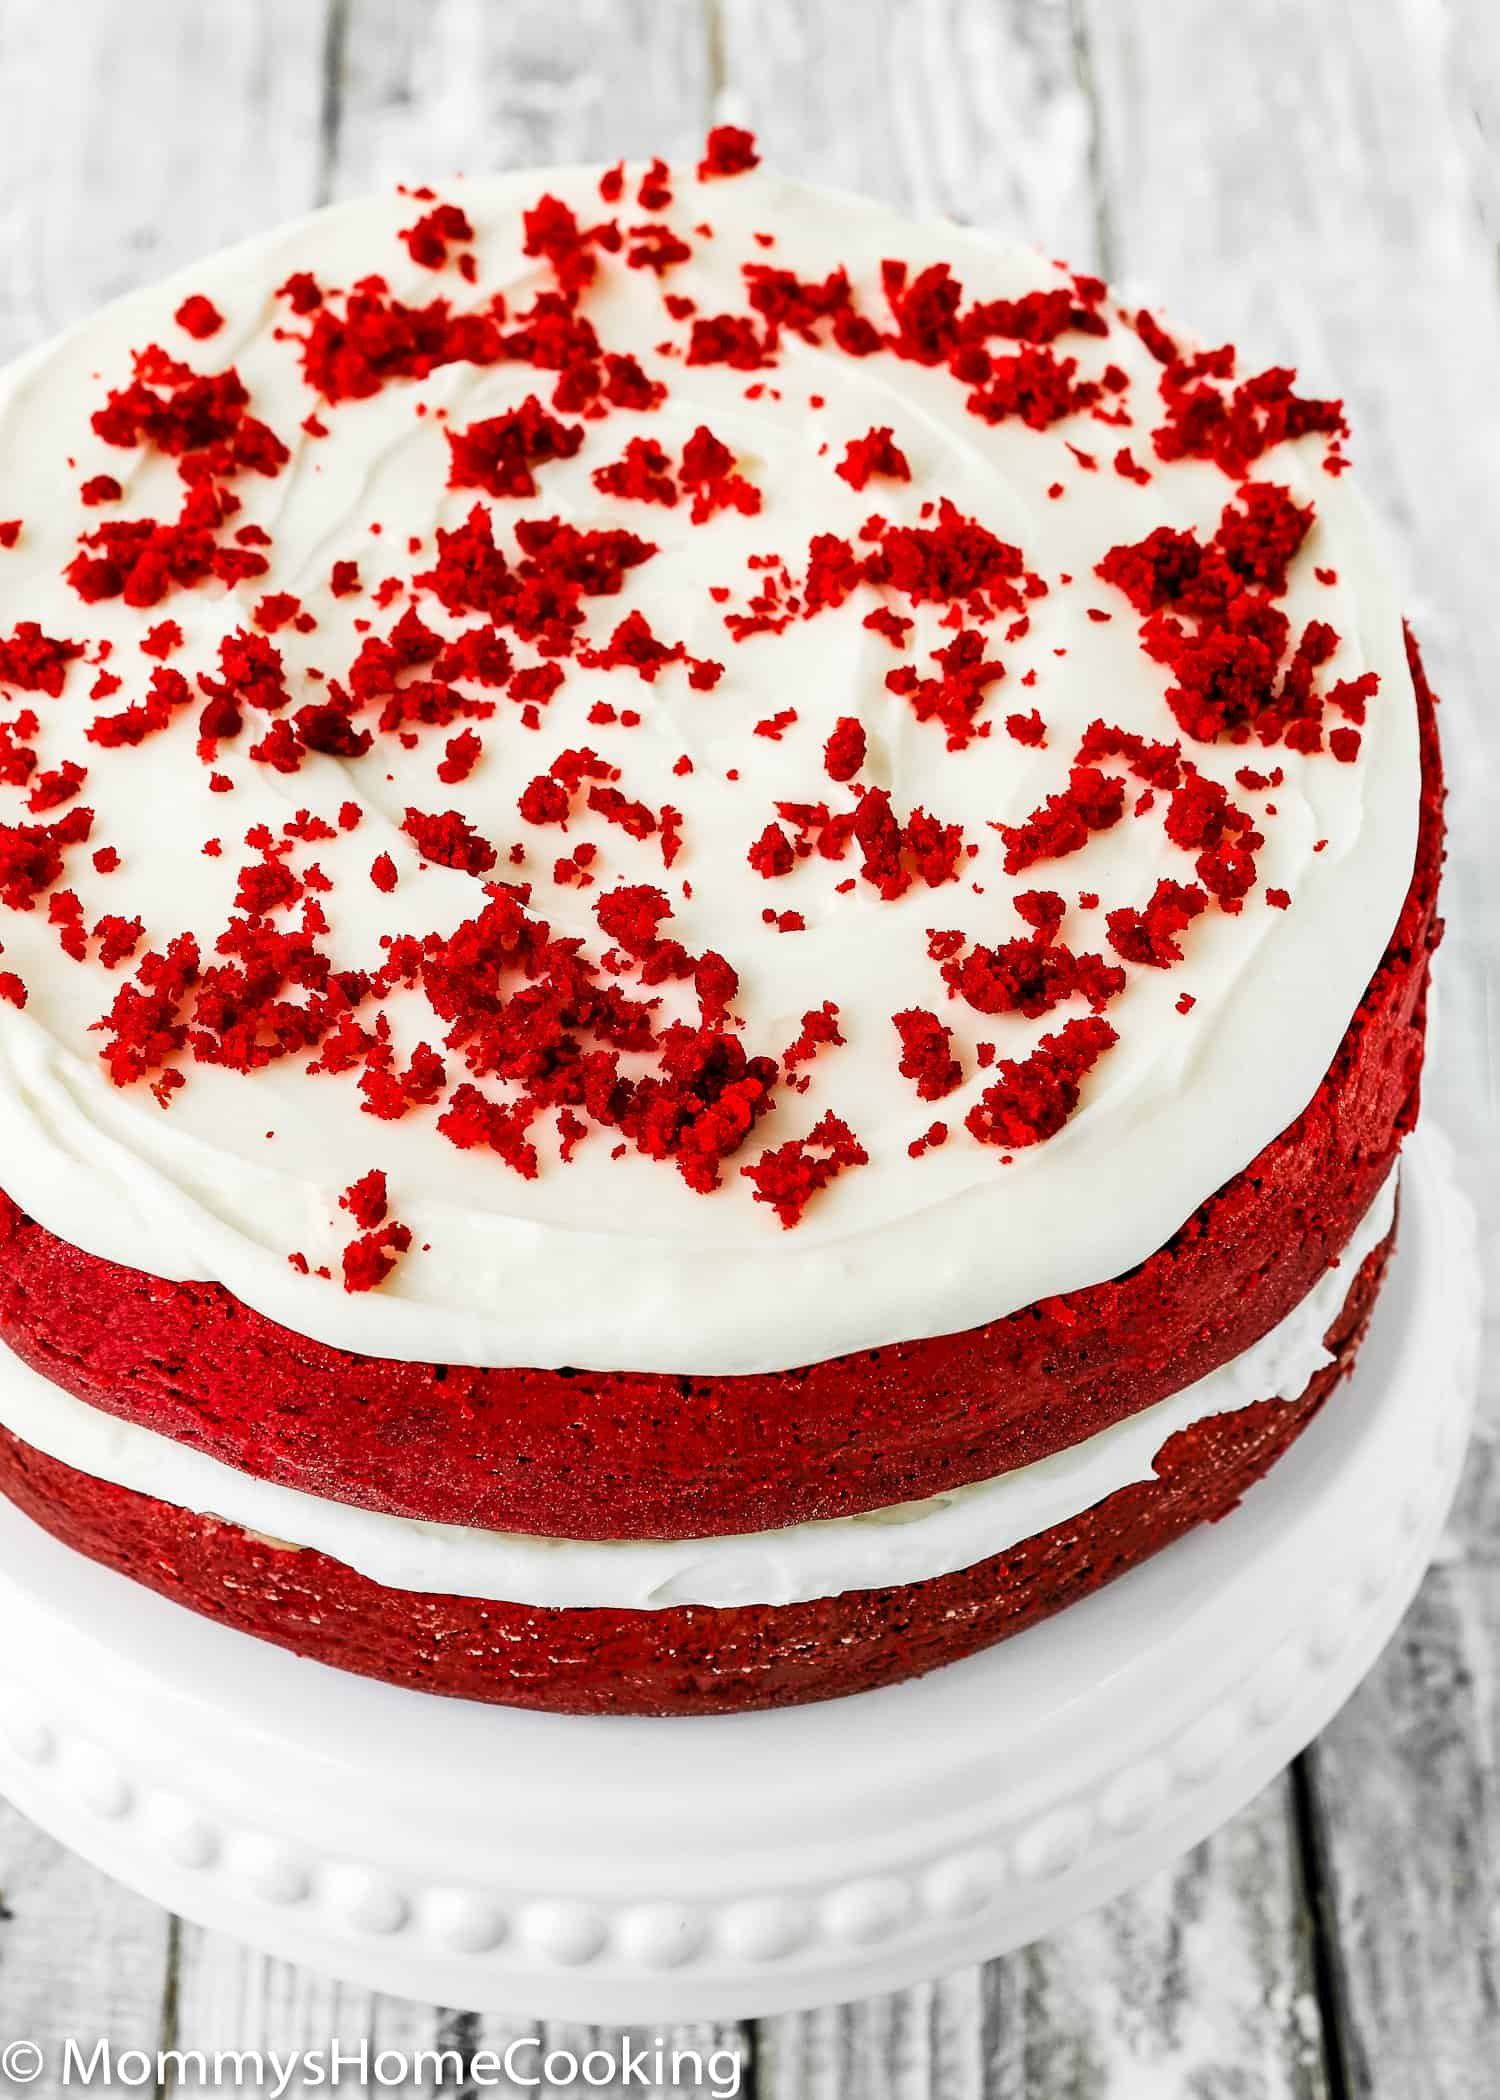 This Eggless Red Velvet Cake is moist, rich, and amazingly tasty! Two lovely layers of tender vibrant sponge red cake with fluffy cream cheese frosting. I promise you will not miss the eggs.  This easy dessert is the perfect showstopper for any occasion. https://mommyshomecooking.com